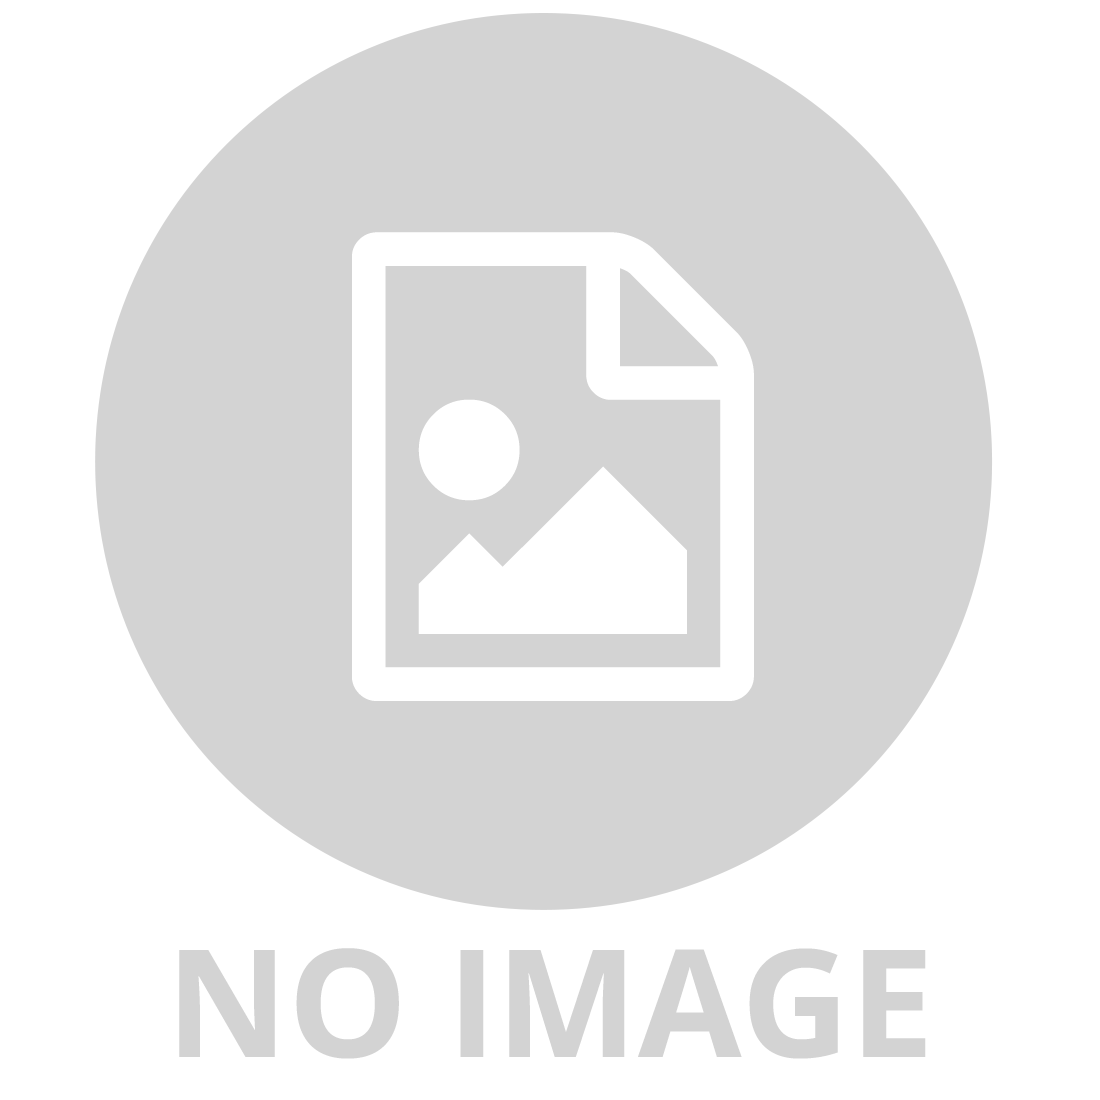 TRANSFORMERS 1 STEP TURBO CHANGER - BUMBLEBEE